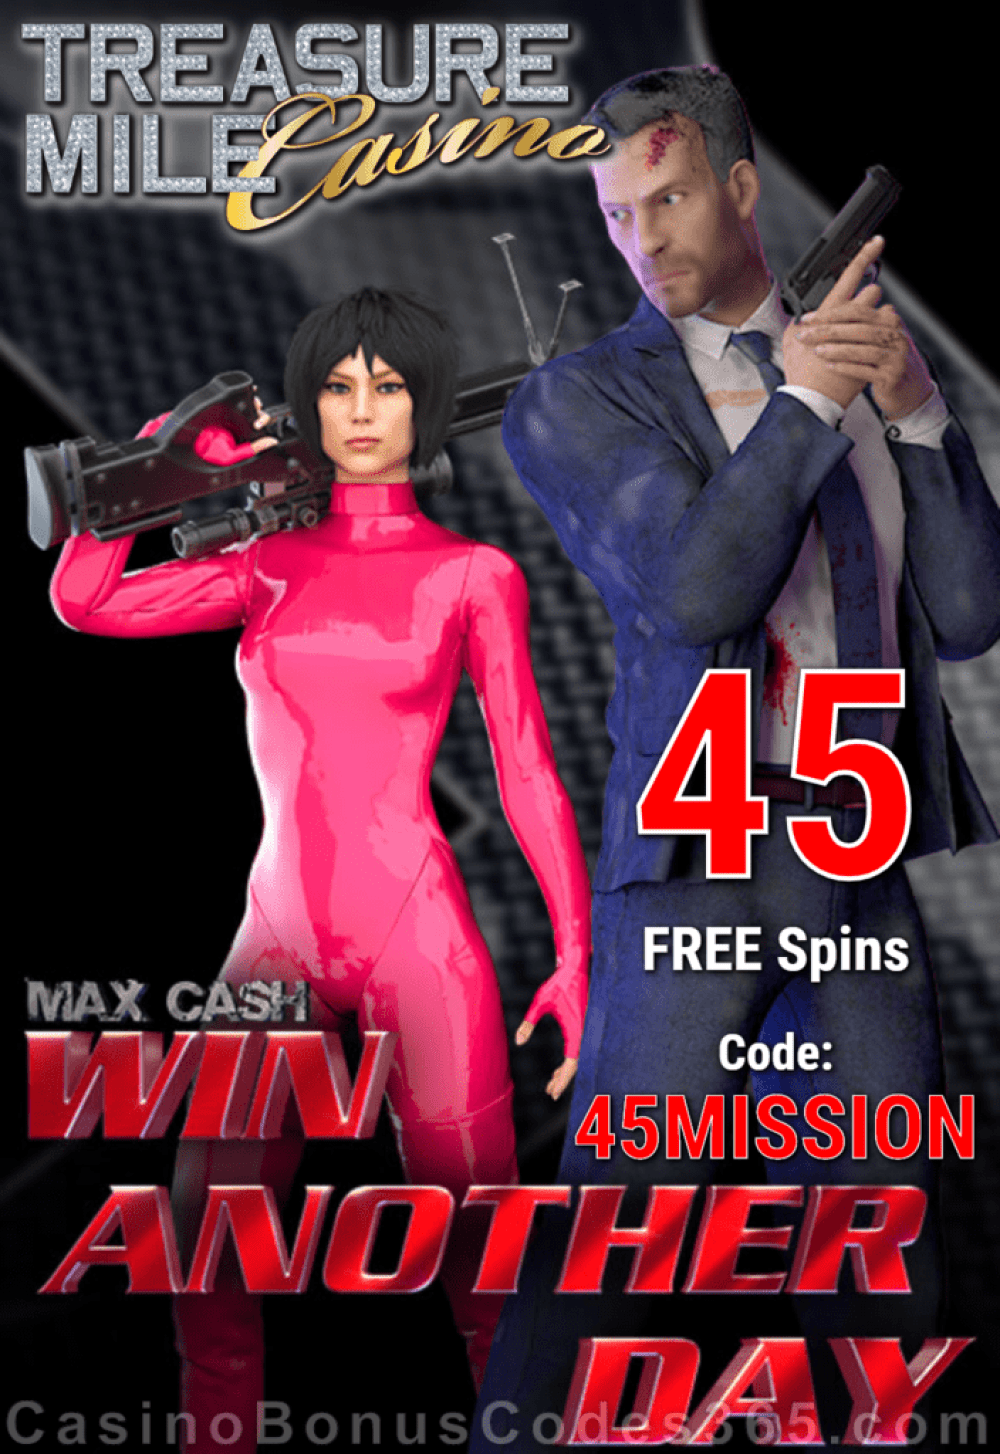 Treasure Mile Casino Exclusive 50 FREE Saucify Win Another Day Spins Special no Deposit Deal